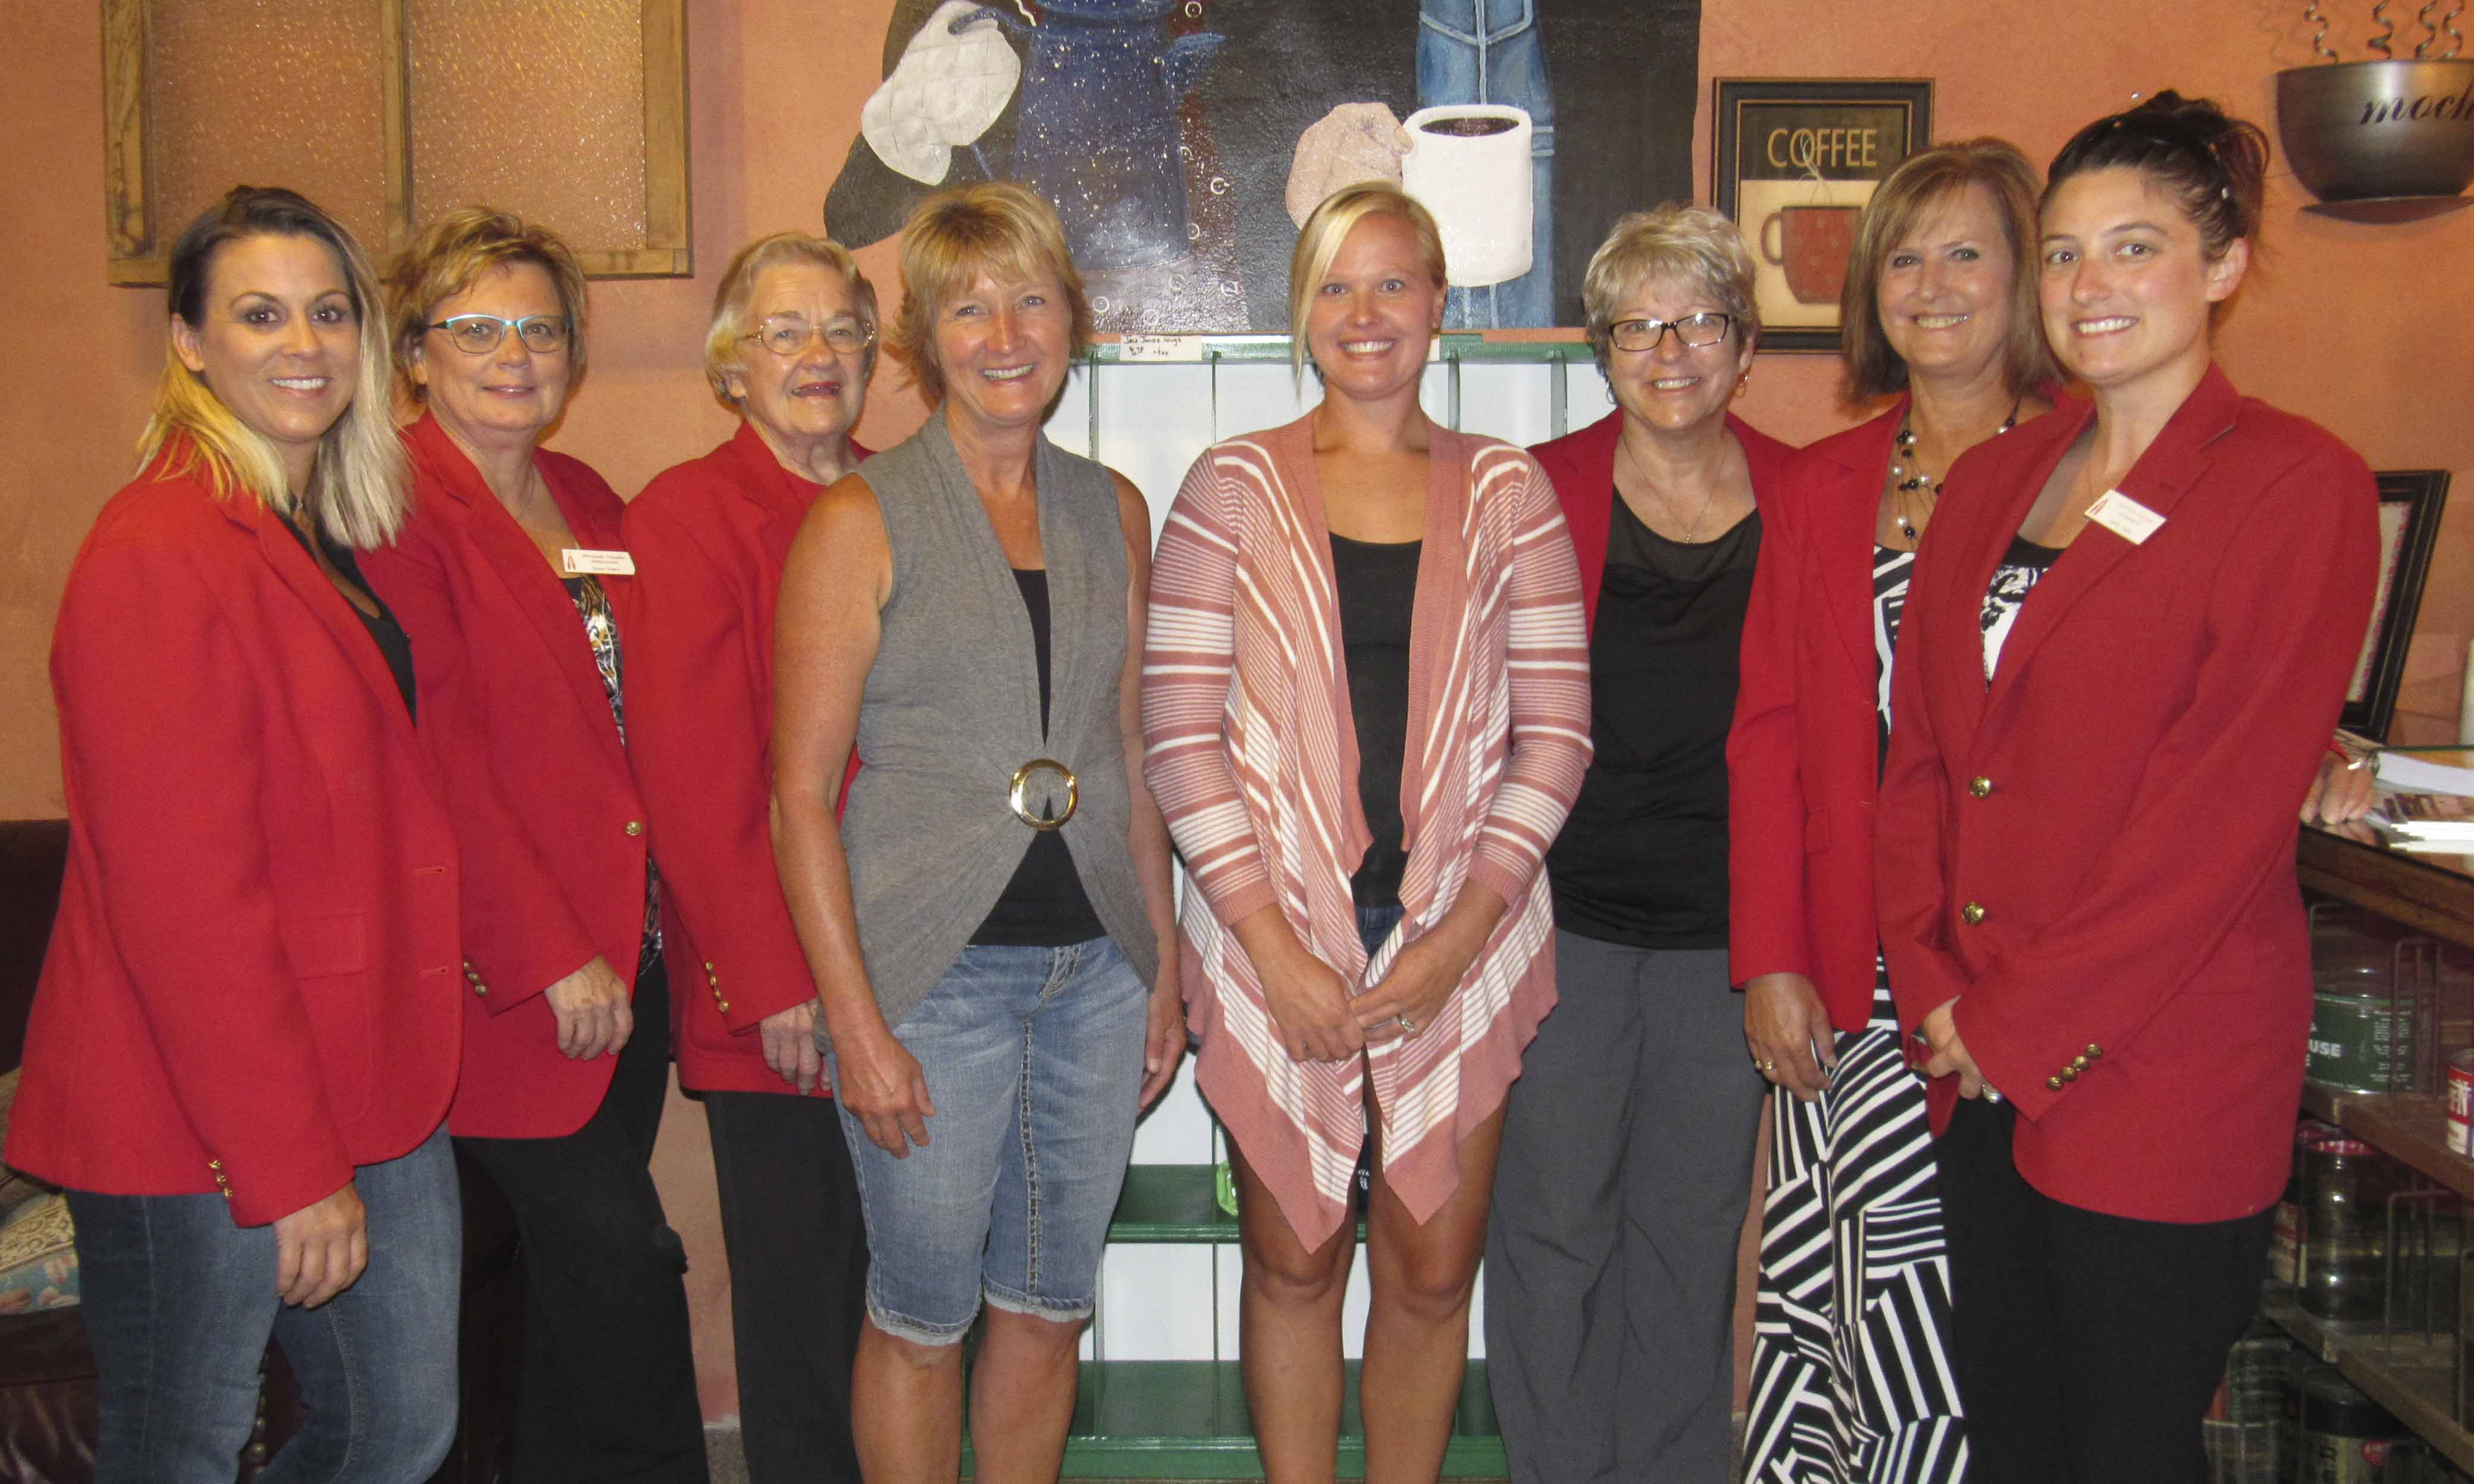 The Monticello Chamber Ambassadors welcomed the new owners of Java Jones, mother and daughter Lisa Monk and Ashley Zumbach. From left are Ambassadors Kimberly Kremer, Suzan Ehlers, Judy Tuetken, Monk and Zumbach, and Ambassadors Kathy Bone, Sandy Moats, and Ashley Faust. (Photo by Kim Brooks)